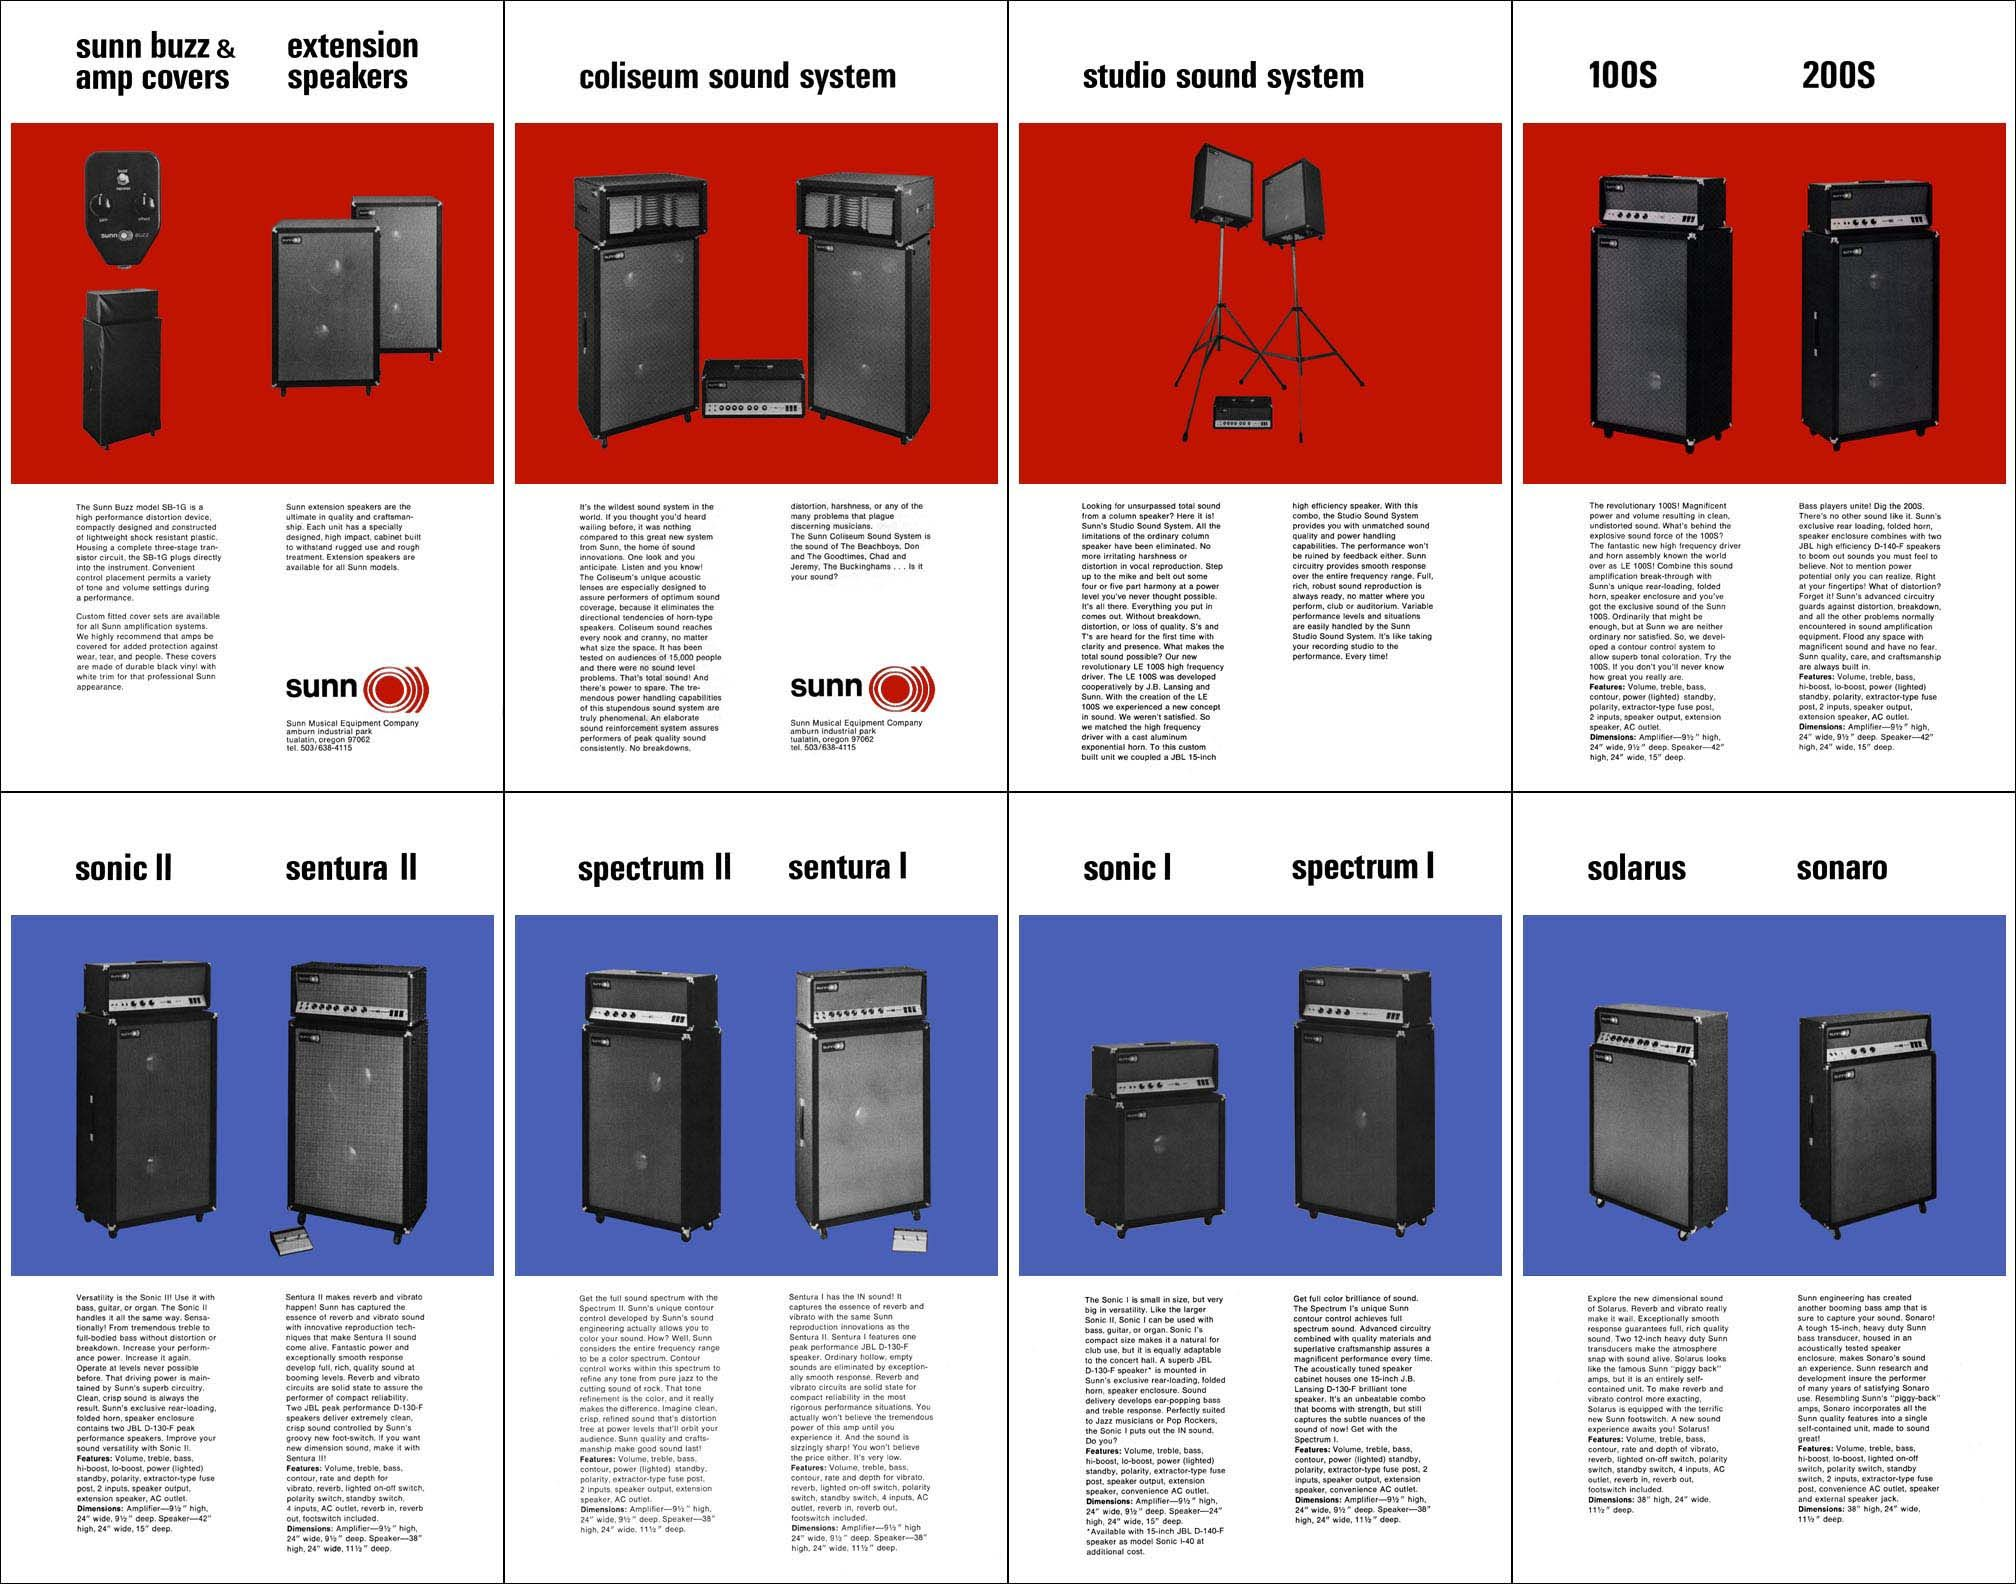 Sunn Amp line (With images) Wall of sound, Sound system, Amp